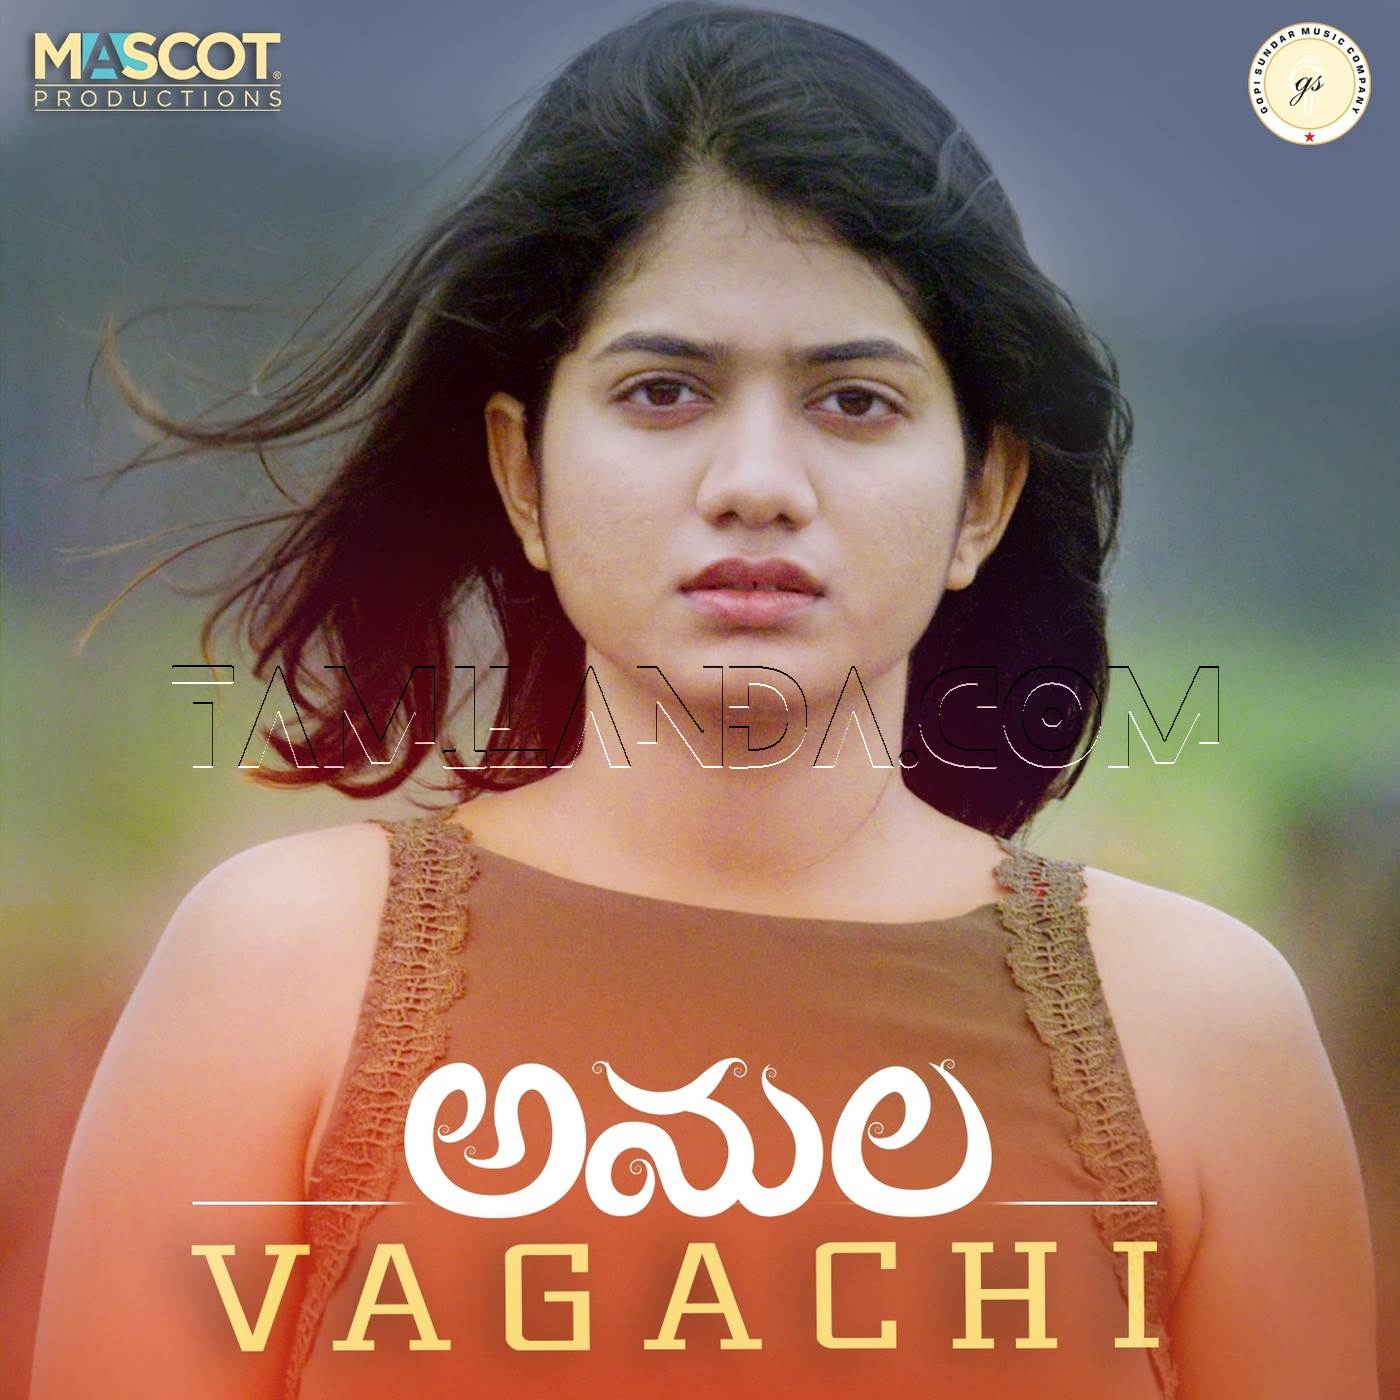 Vagachi (From Amala) – Single FLAC/WAV Song